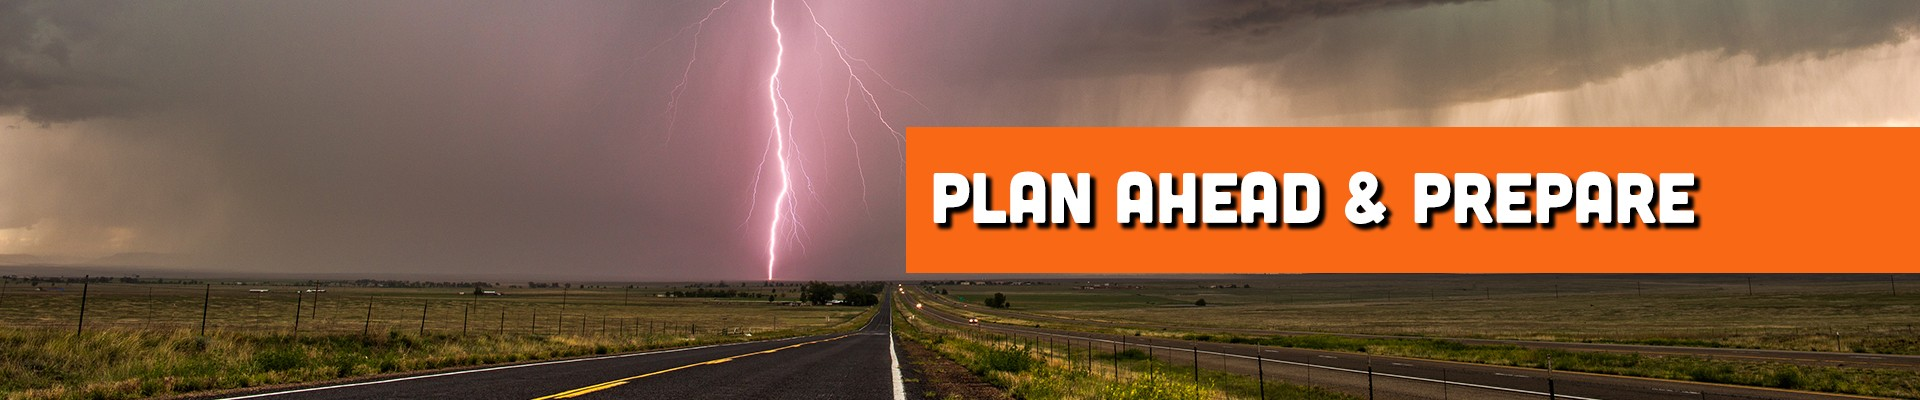 Plan ahead and prepare for storms while driving your RV.